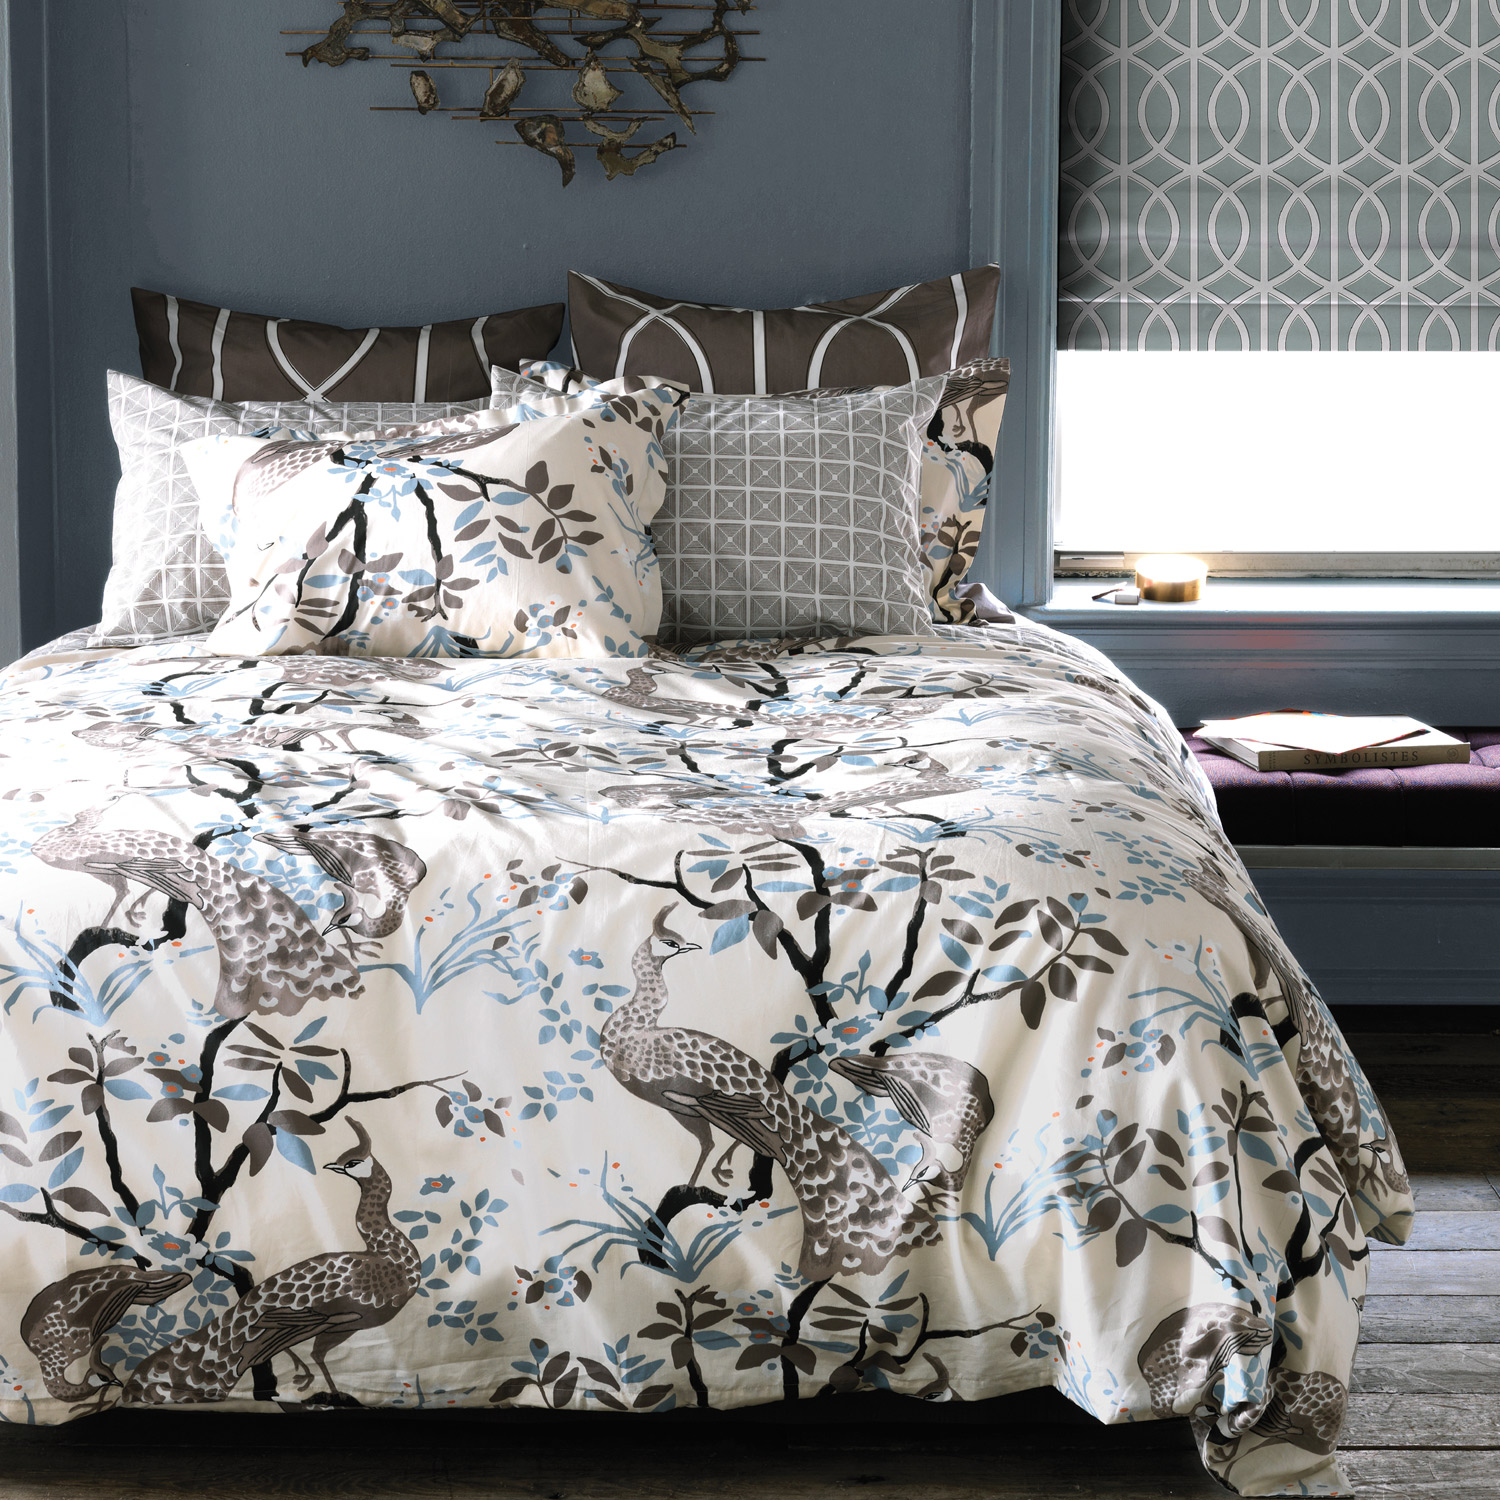 luxury bedsize and dwellstudio